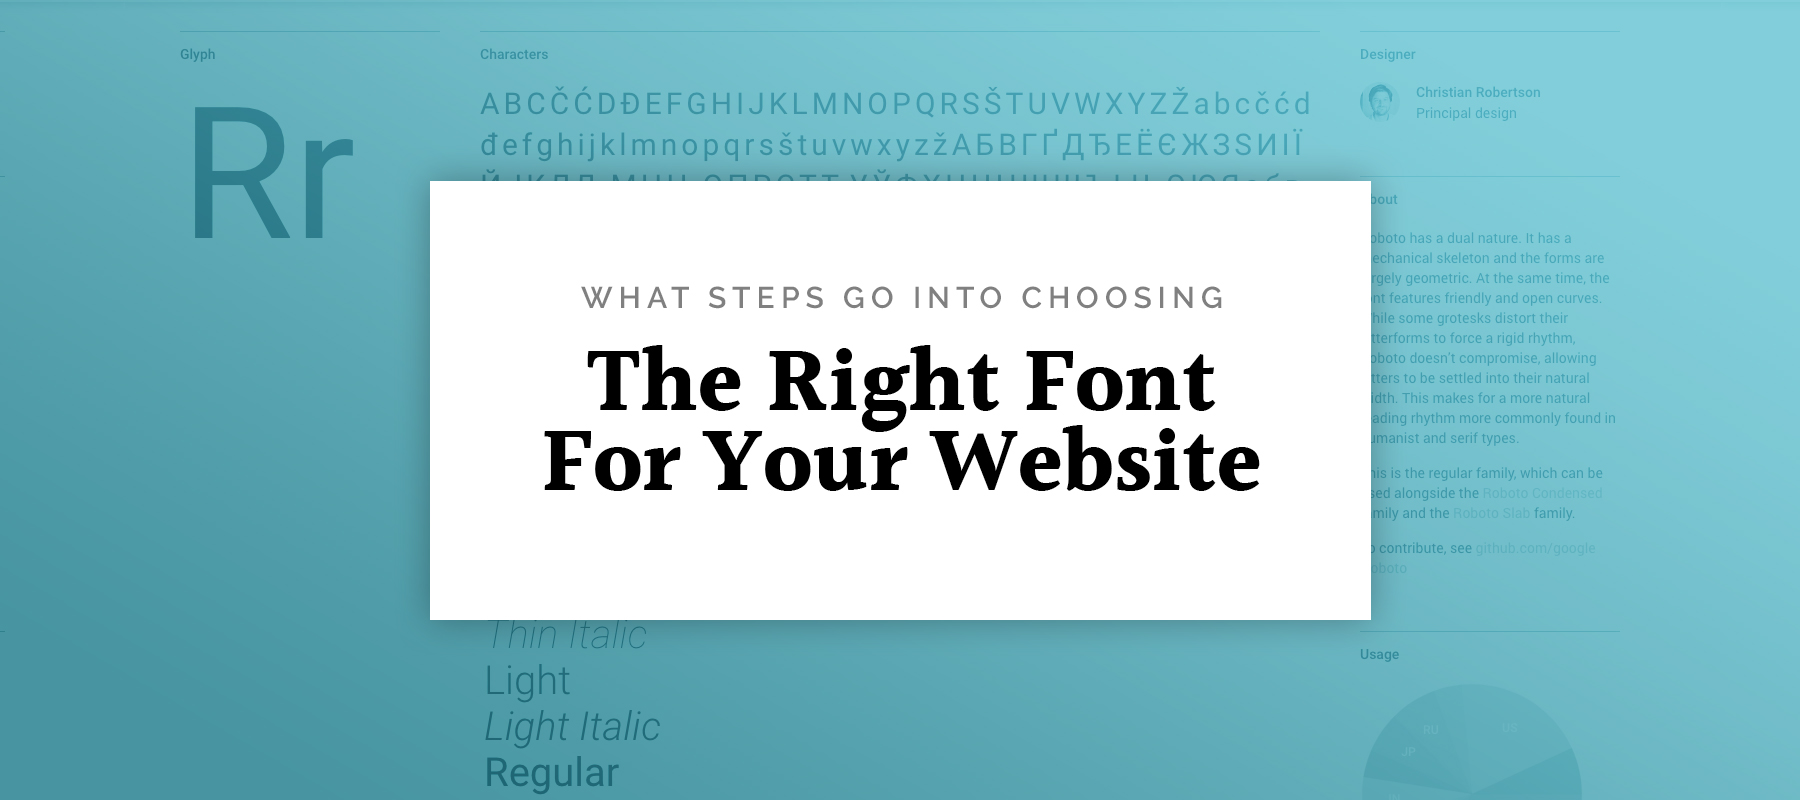 The right font for your website